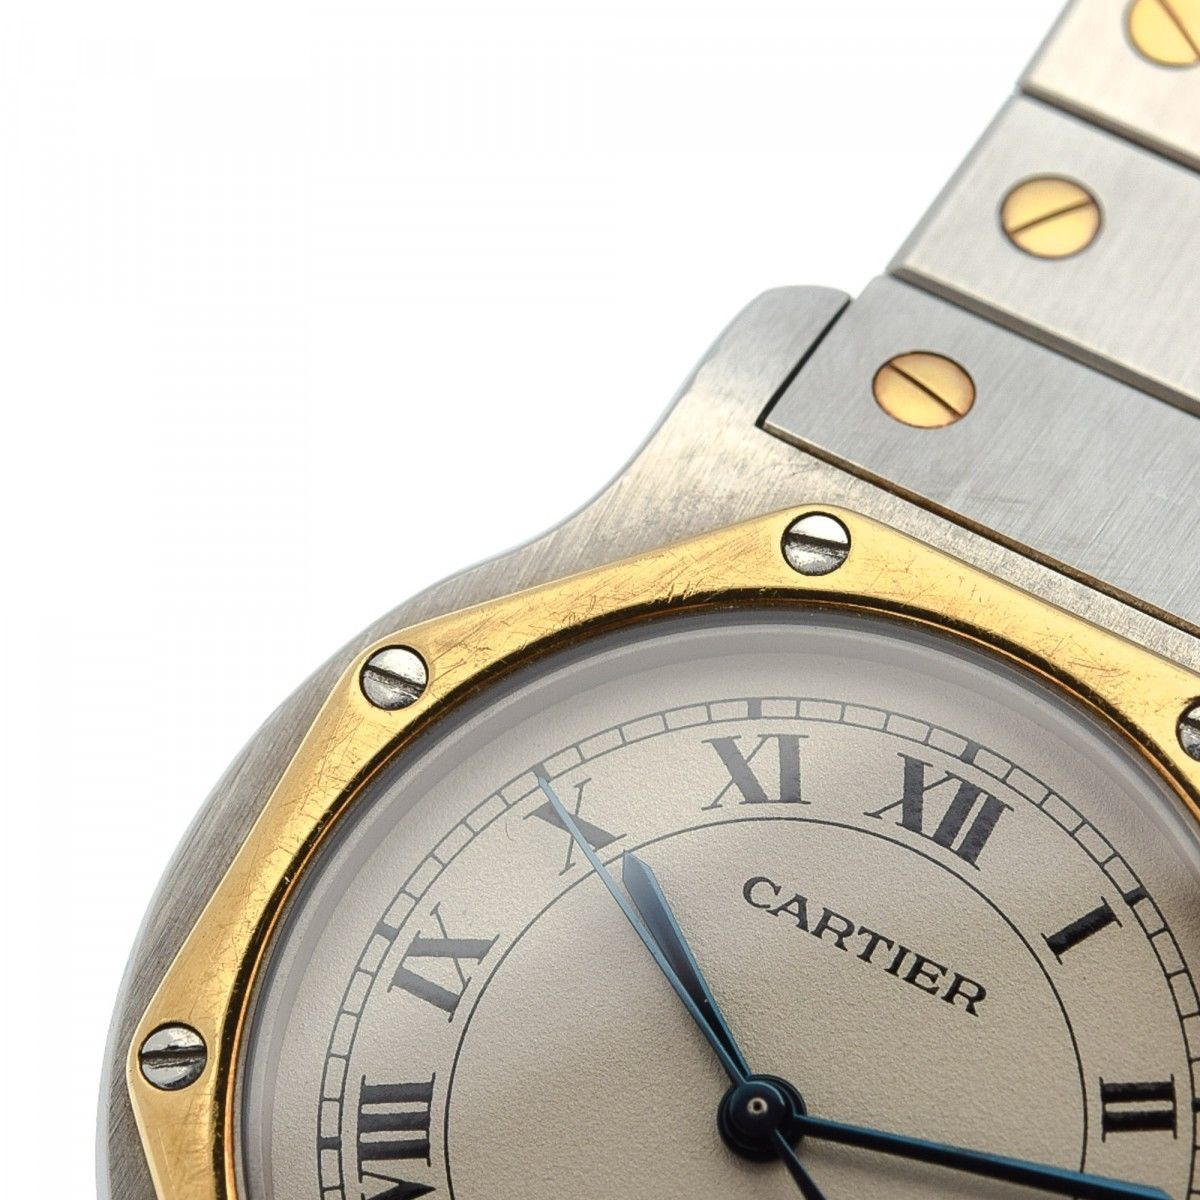 7004c0205aa Cartier Santos Octagon 187902 30mm Stainless Steel and Gold Plated ...